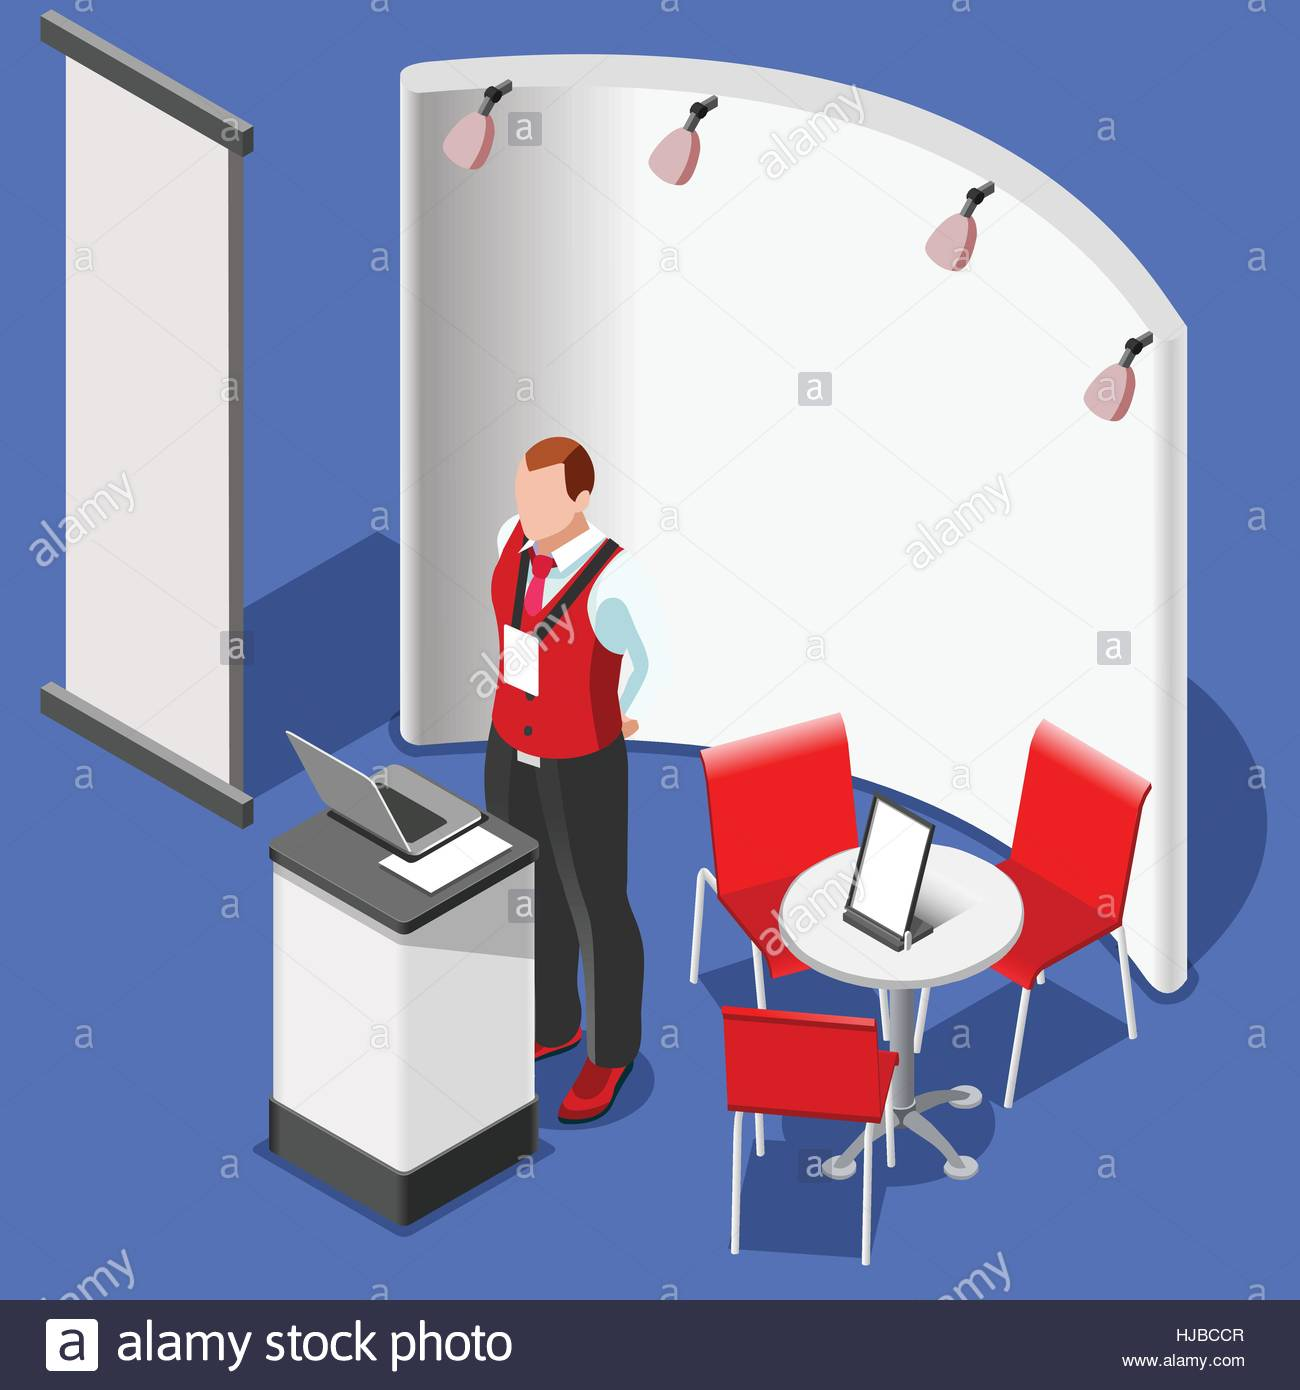 Exhibition Booth Icon : Exhibition booth stand desk roll up display panel d